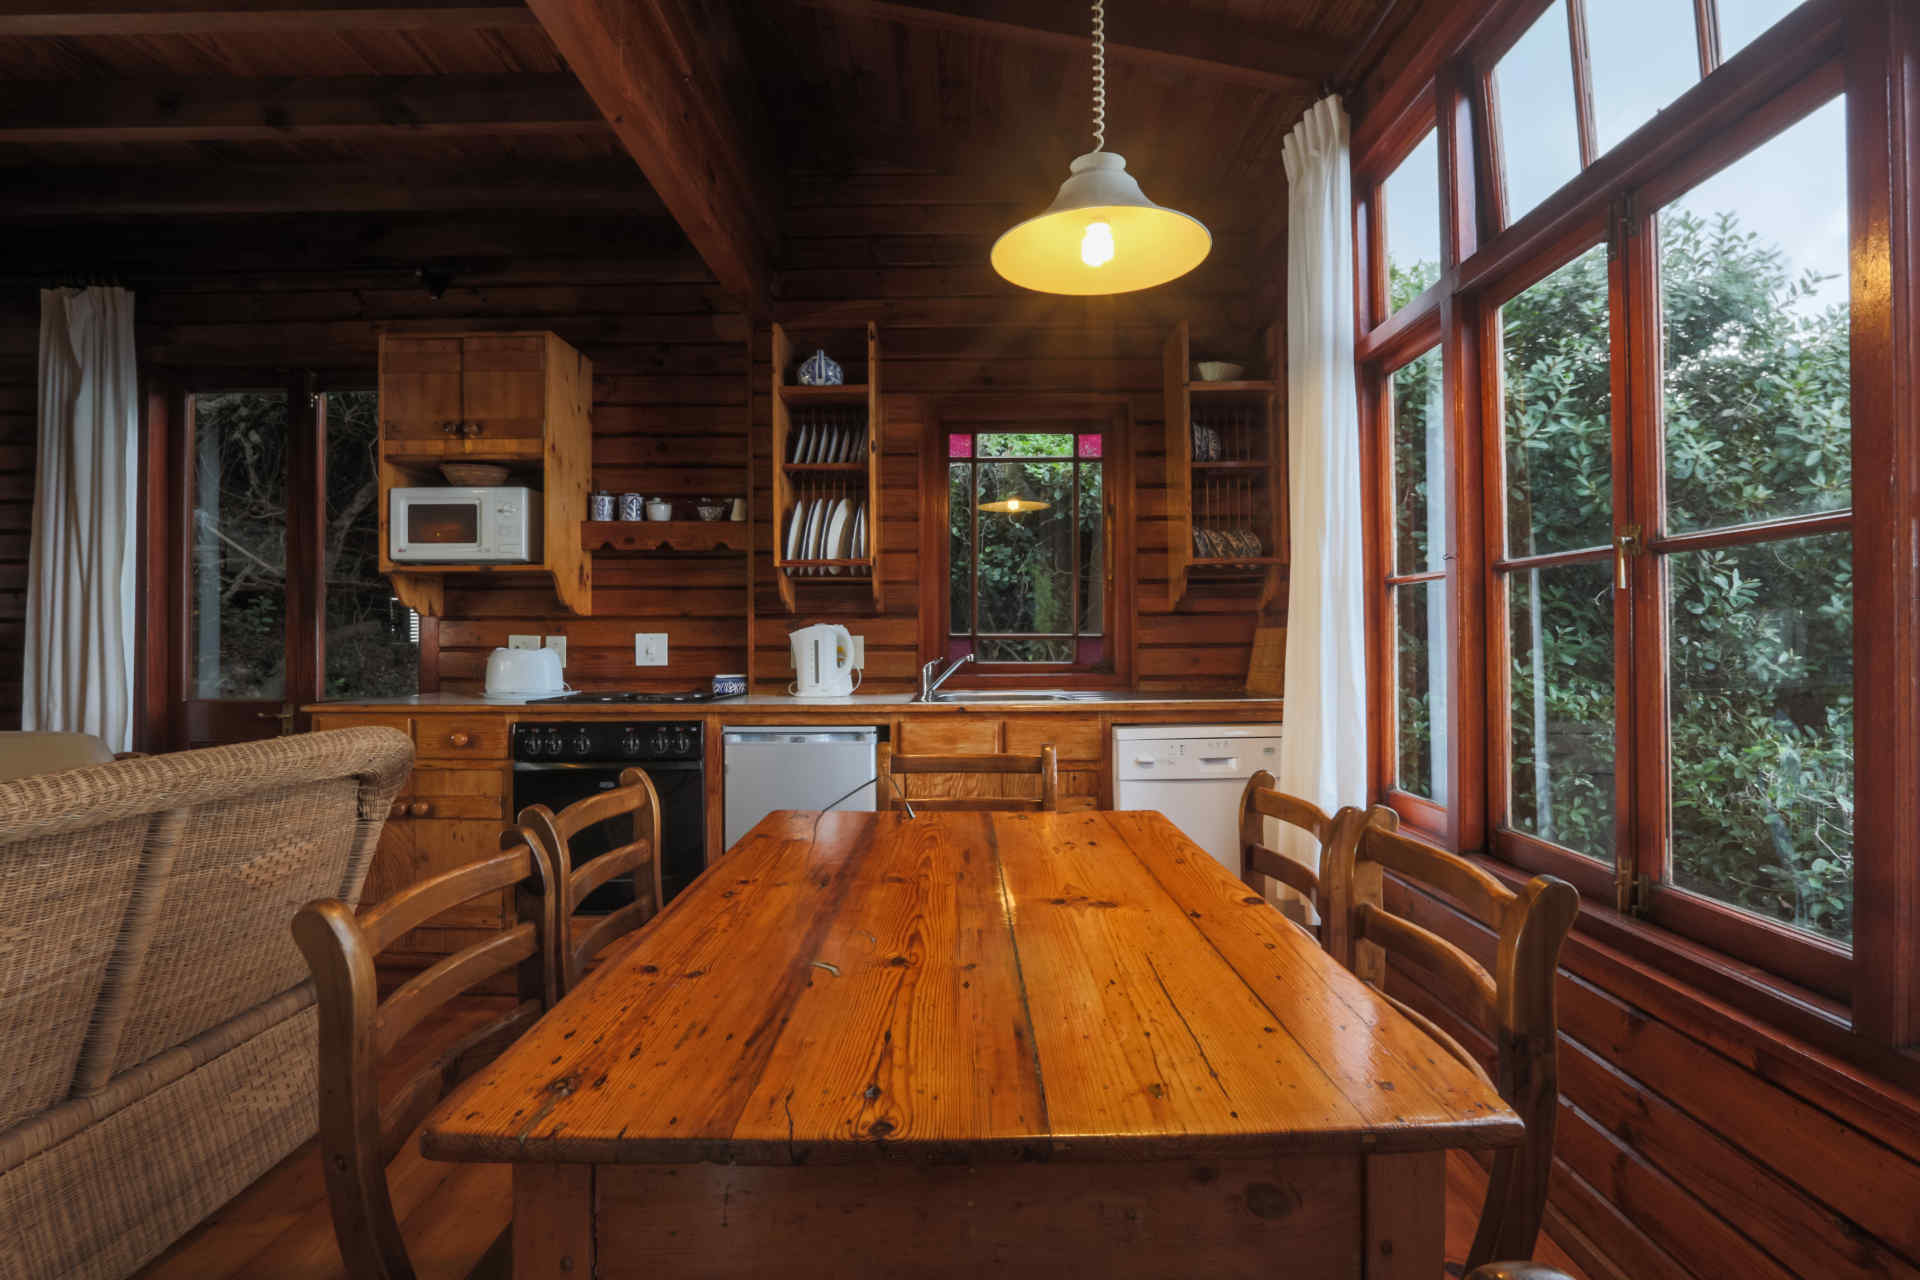 Self Catering Dining Room and Kitchen